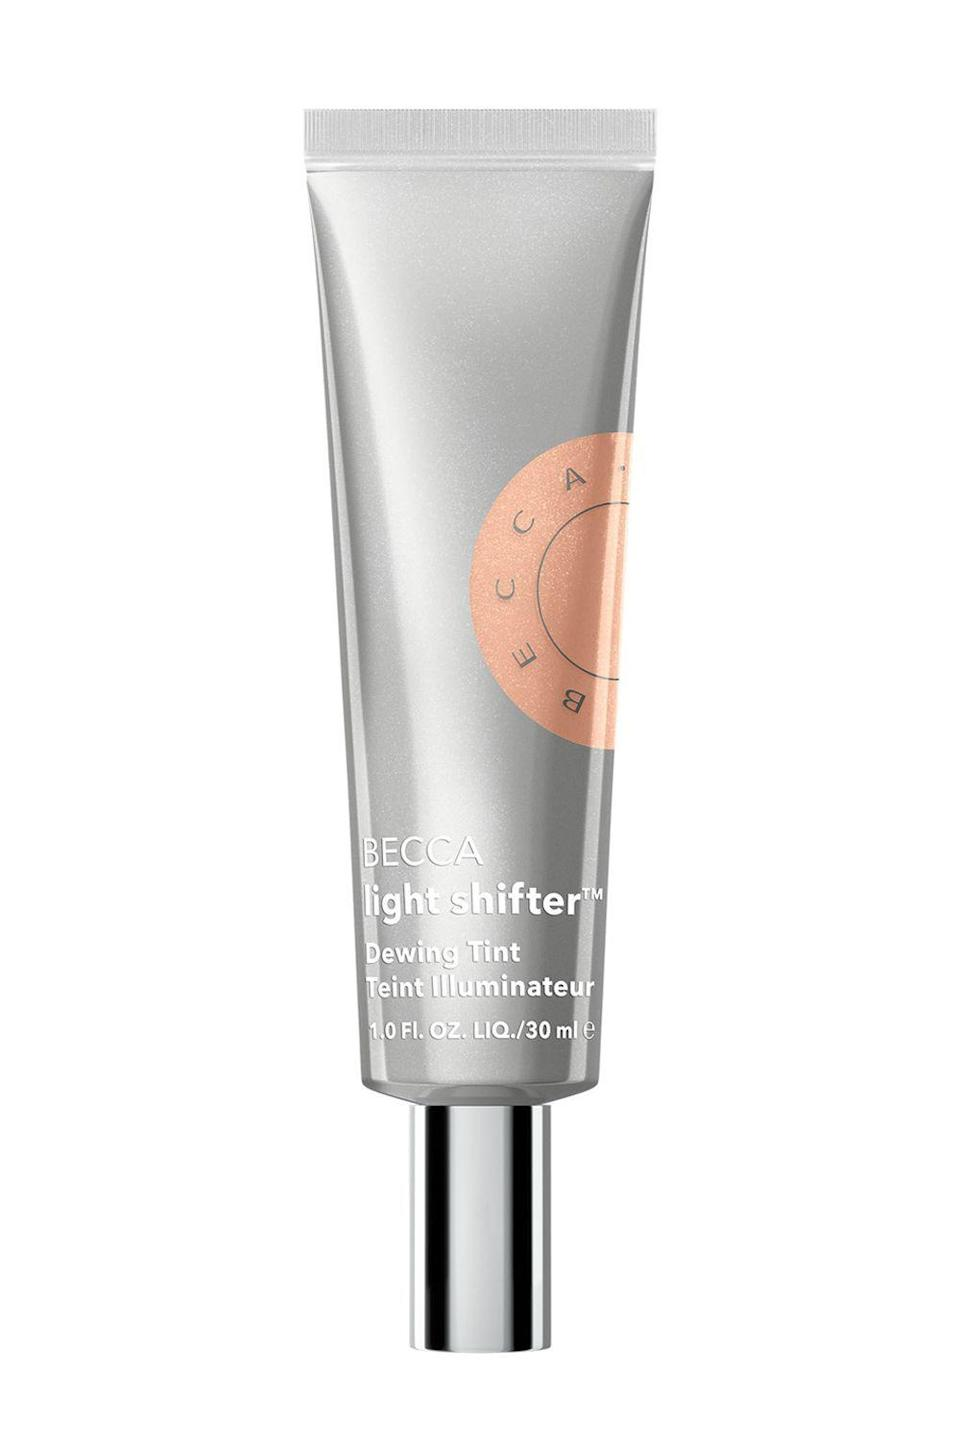 """<p><strong>BECCA Cosmetics</strong></p><p>sephora.com</p><p><strong>$30.00</strong></p><p><a href=""""https://go.redirectingat.com?id=74968X1596630&url=https%3A%2F%2Fwww.sephora.com%2Fproduct%2Fbecca-cosmetics-light-shifter-dewing-tint-tinted-moisturizer-P468122&sref=https%3A%2F%2Fwww.cosmopolitan.com%2Fstyle-beauty%2Fbeauty%2Fg36094404%2Fbest-skin-tints%2F"""" rel=""""nofollow noopener"""" target=""""_blank"""" data-ylk=""""slk:Shop Now"""" class=""""link rapid-noclick-resp"""">Shop Now</a></p><p>A few drops of this skin tint will give you the dewiest, glowiest skin of your GD life—trust me. It's infused with hyaluronic acid to plump and hydrate, plus <strong>sheer shimmery pigments (just like a <a href=""""https://www.cosmopolitan.com/style-beauty/beauty/g8655202/best-highlighter-makeup-for-face/"""" rel=""""nofollow noopener"""" target=""""_blank"""" data-ylk=""""slk:highlighter"""" class=""""link rapid-noclick-resp"""">highlighter</a>) </strong>to instantly illuminate your skin.</p>"""